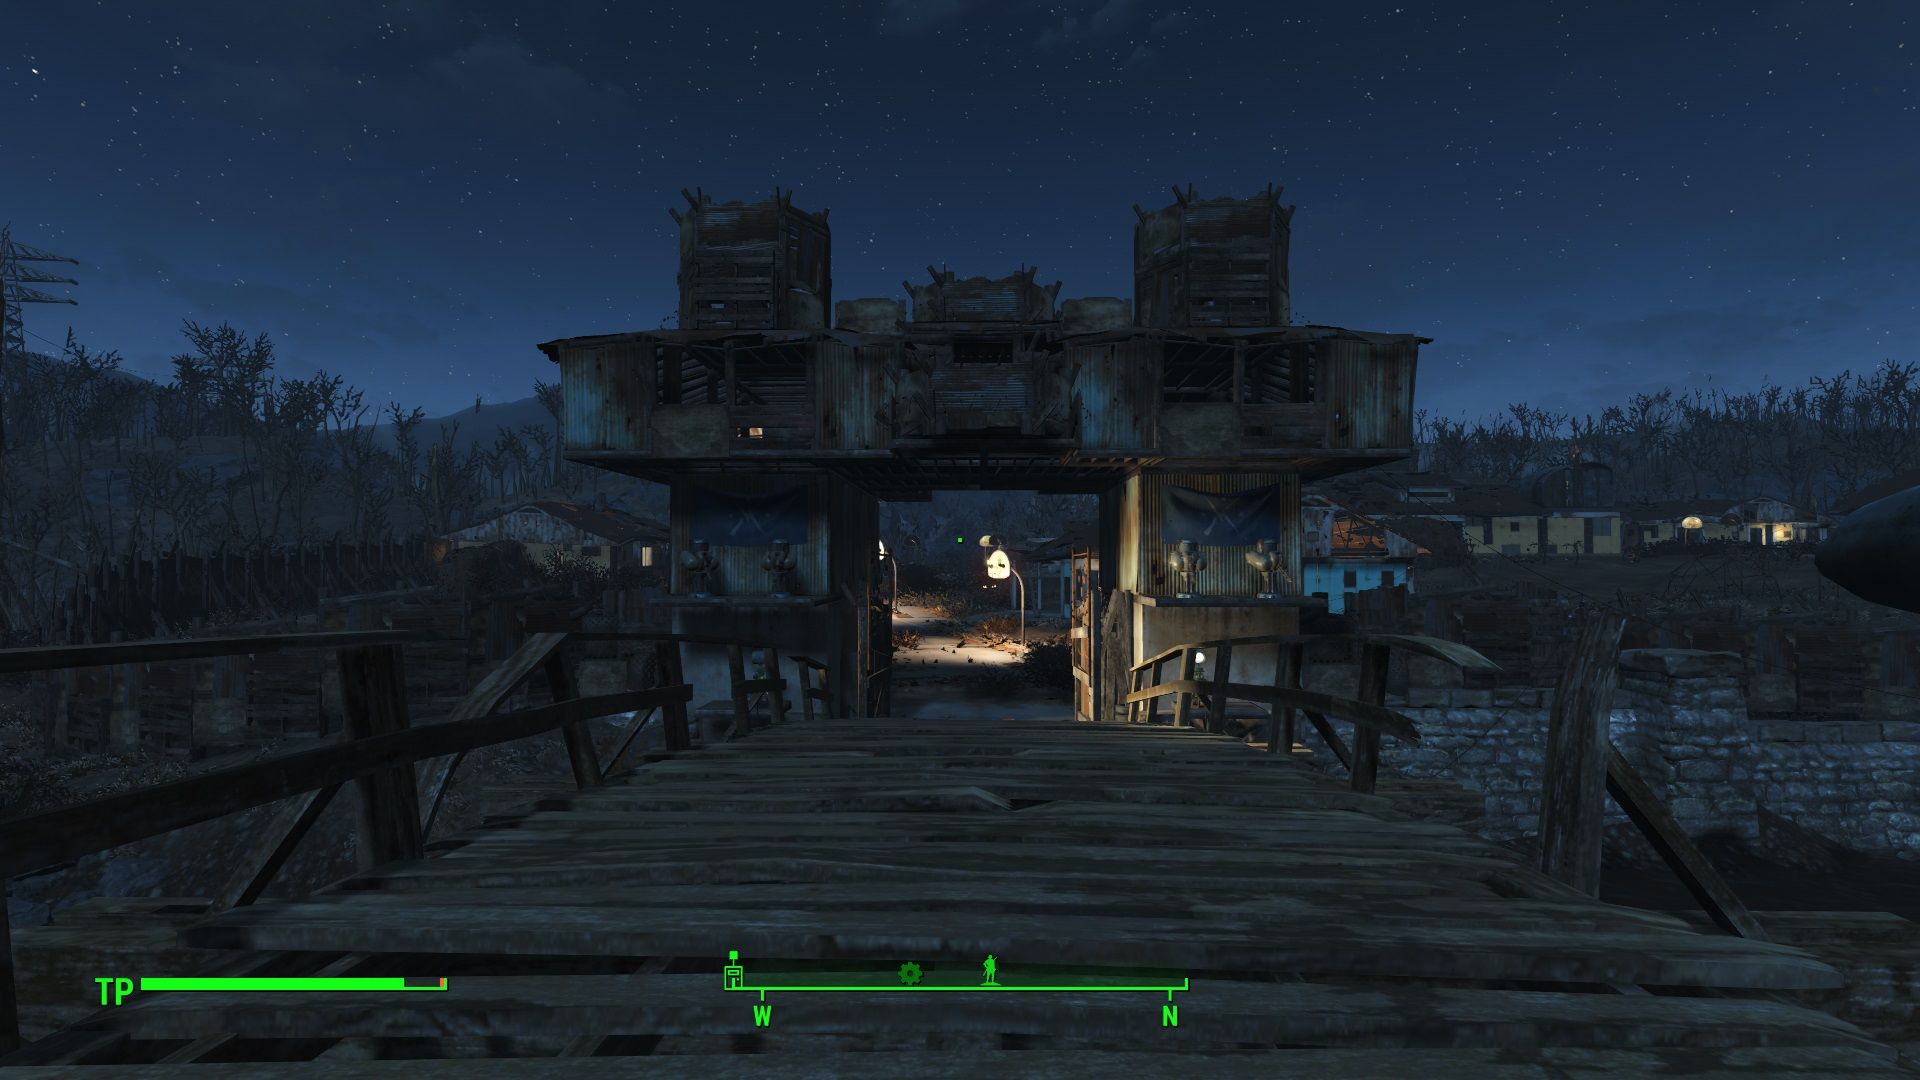 Fallout 4 Wall Light Not Working : My Sanctuary Hills with Defense Wall DIY Street Lights and more SAVEGAME - Fallout 4 / FO4 mods